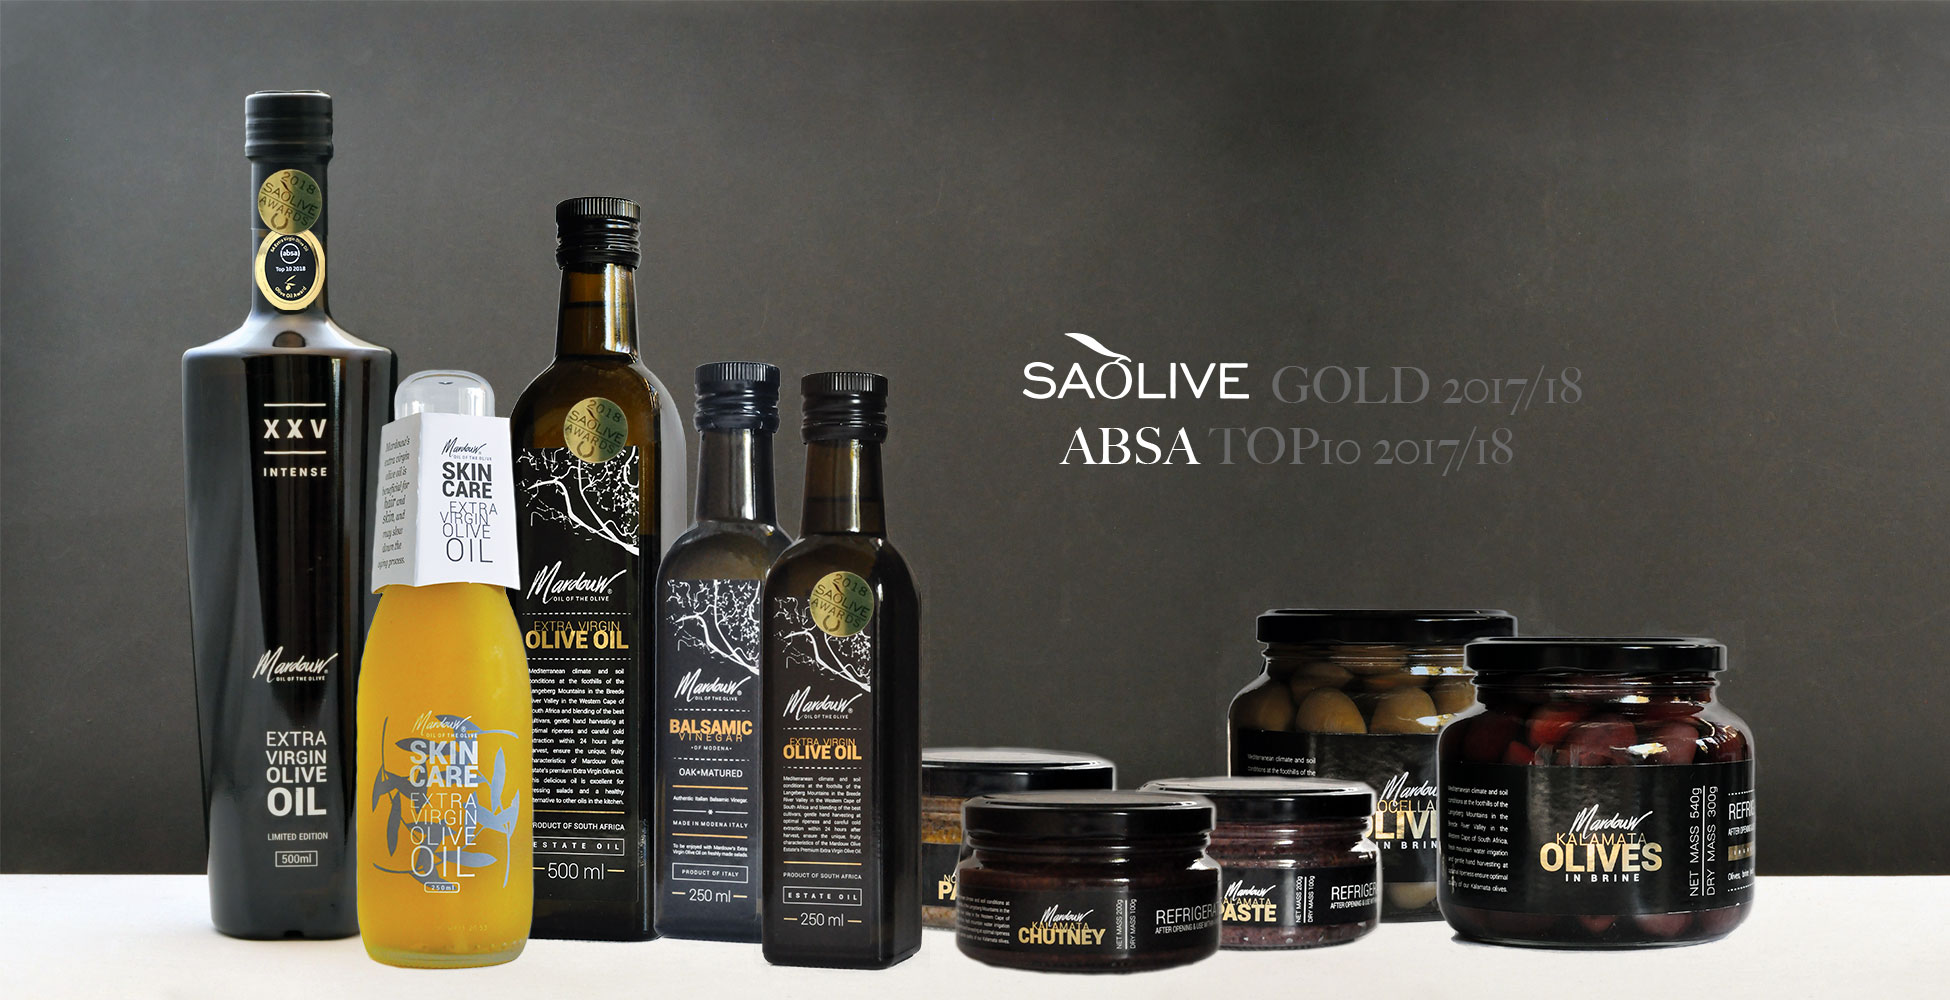 South African Extra Virgin Olive Oil